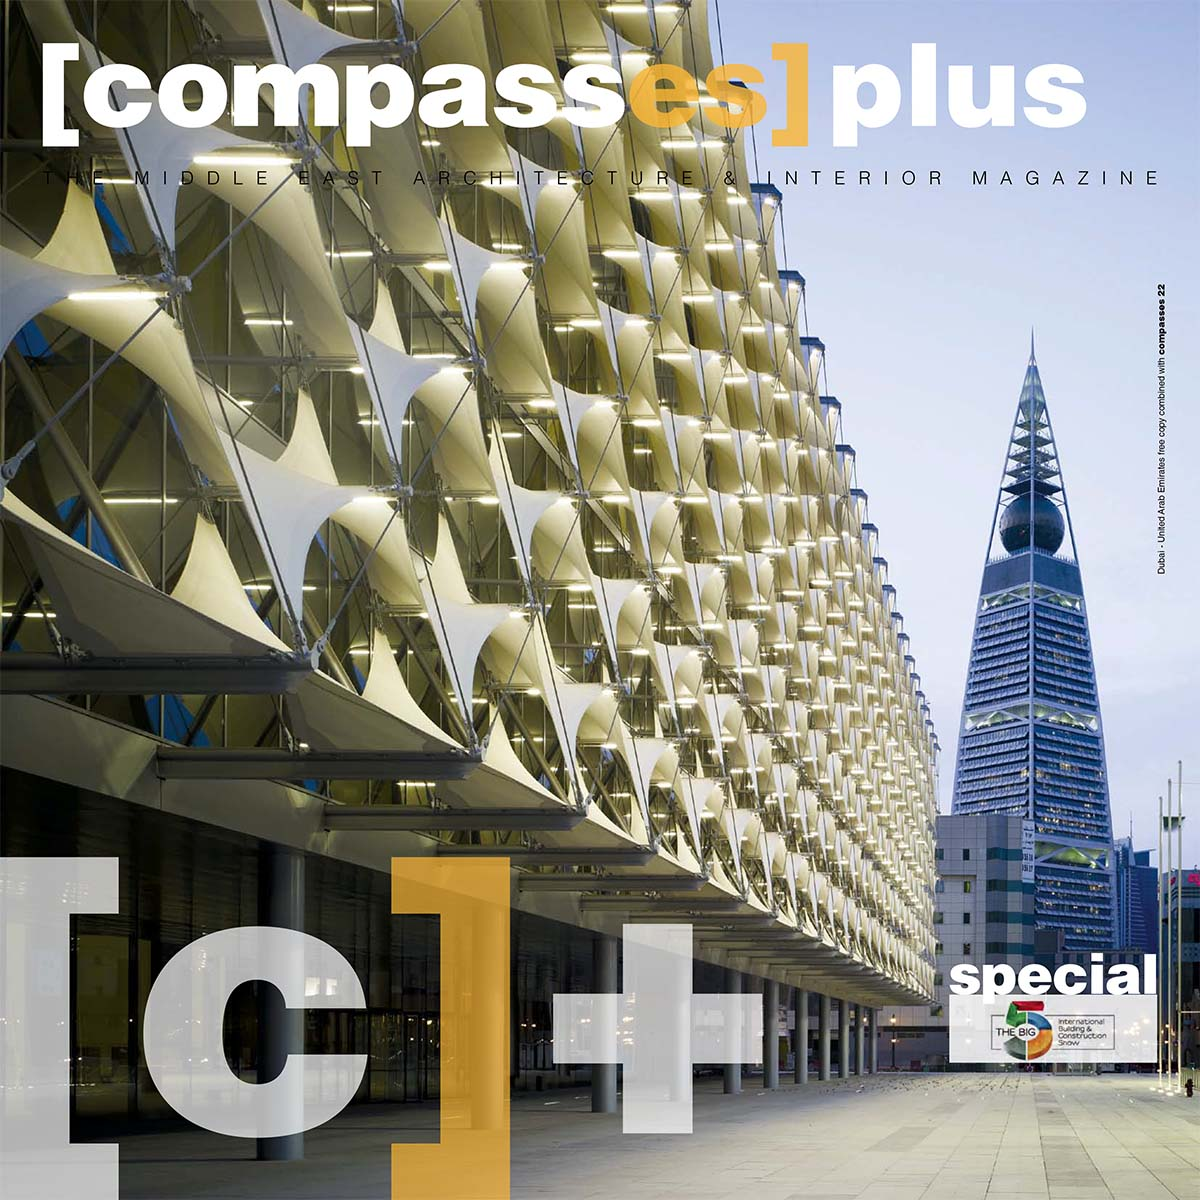 Compasses Plus Big Five 2014